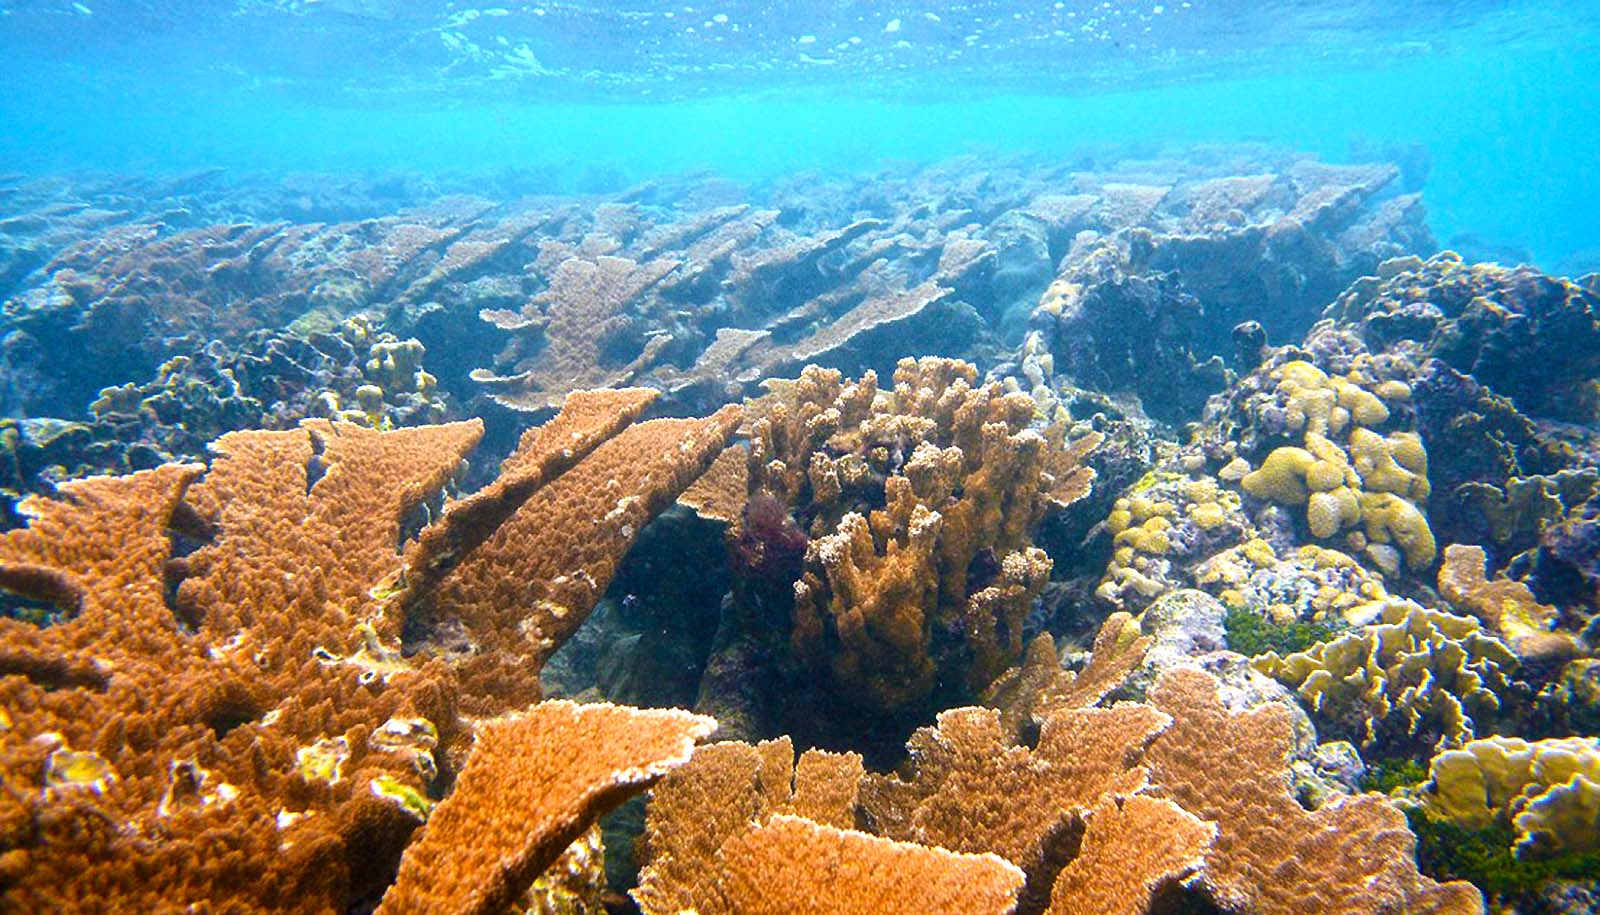 5,000-year-old corals are now threatened